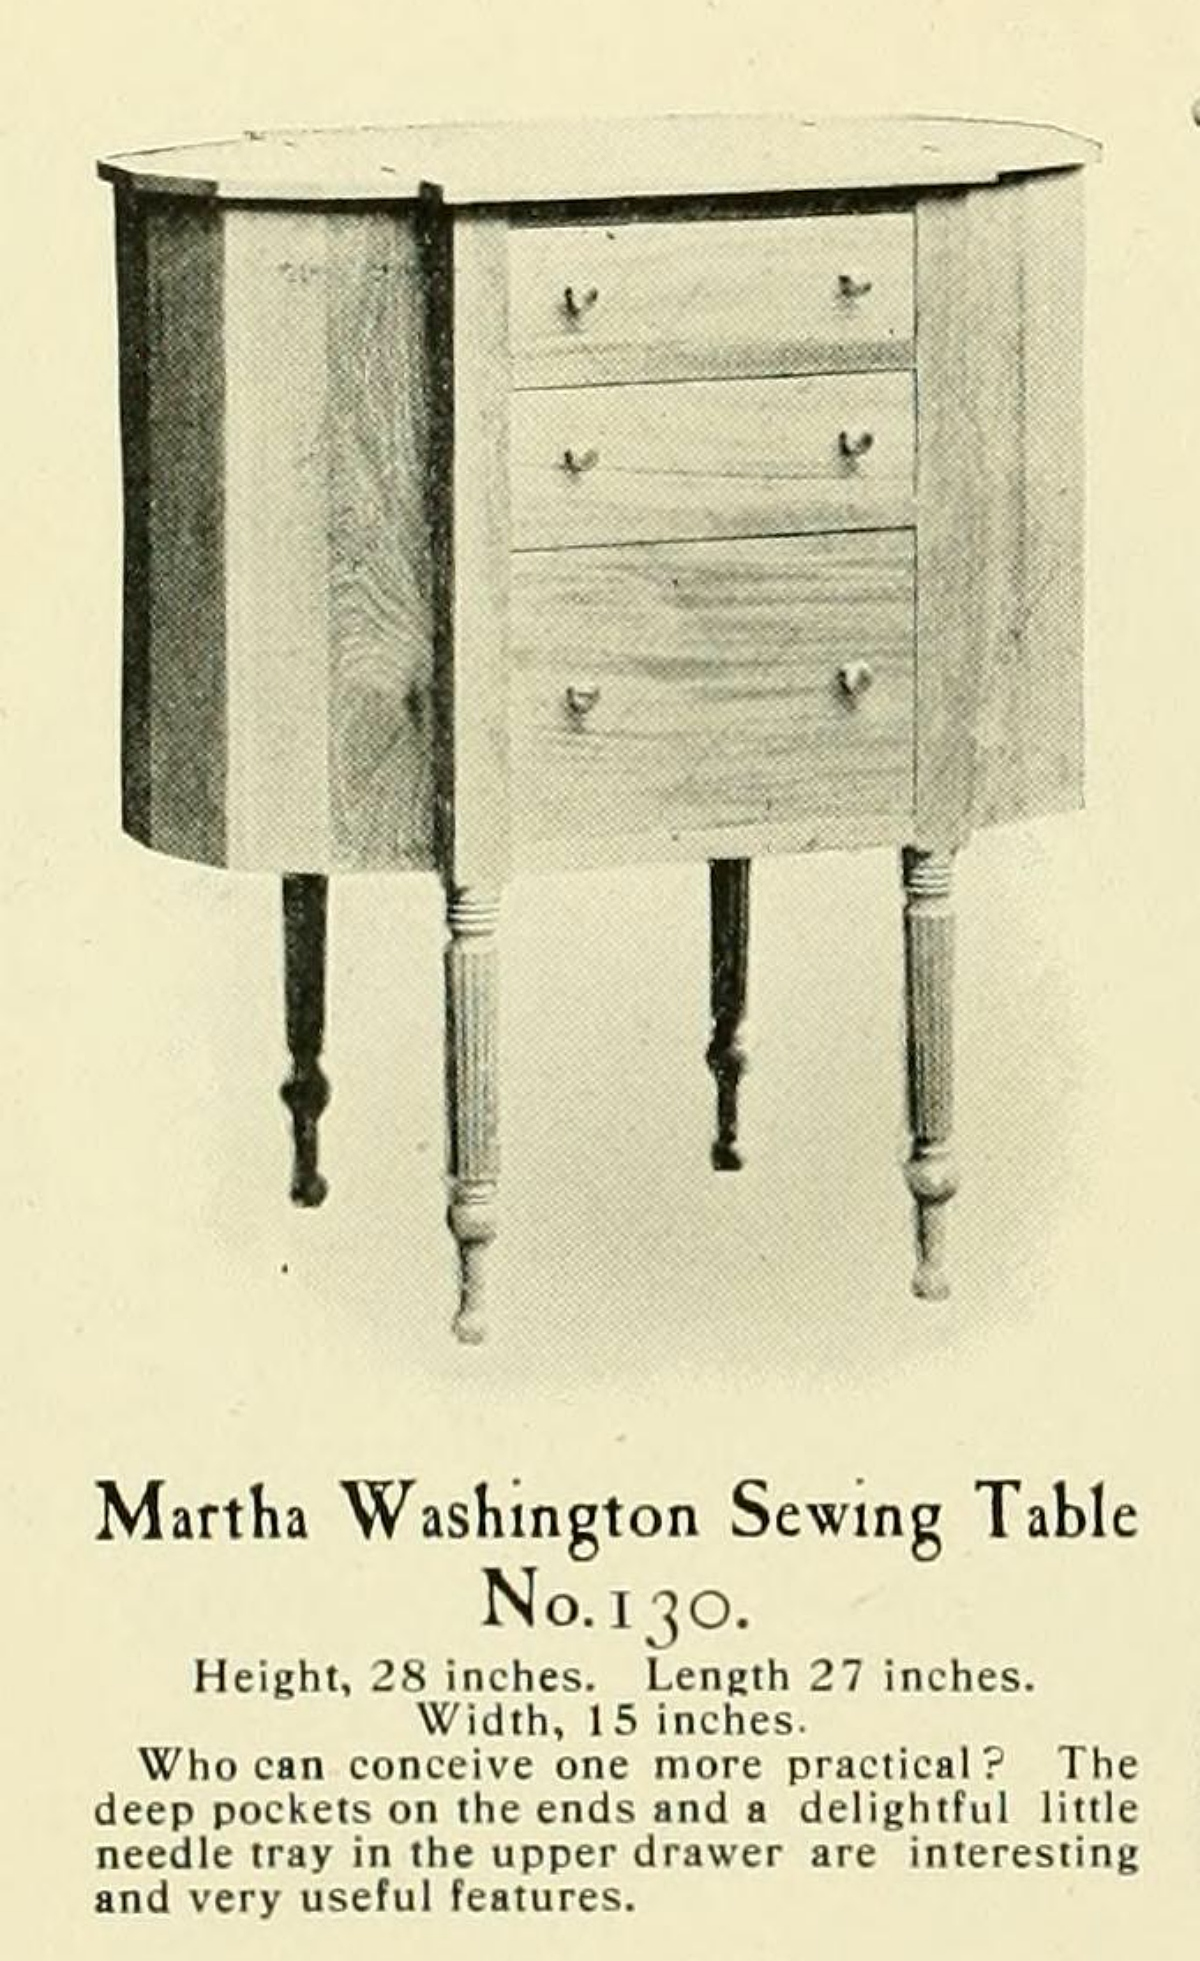 1915 sewing cabinet catalog entry